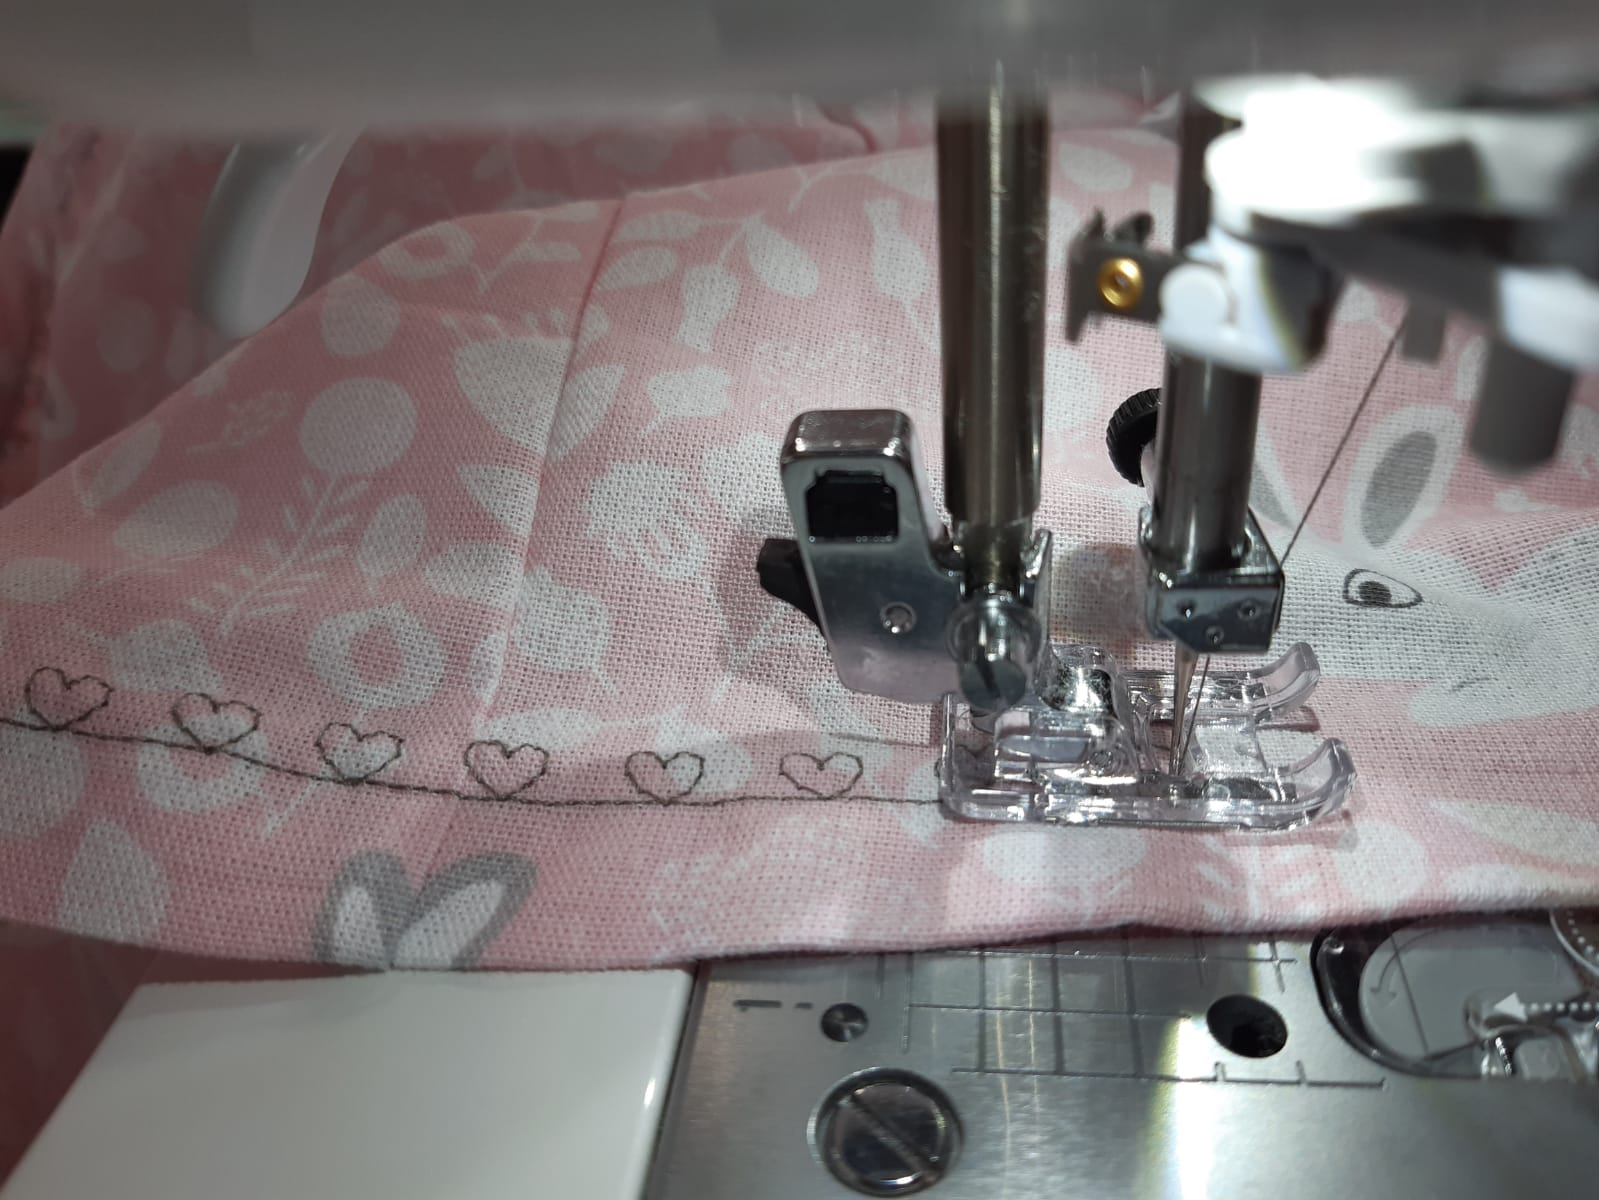 How to learn to sew – interview